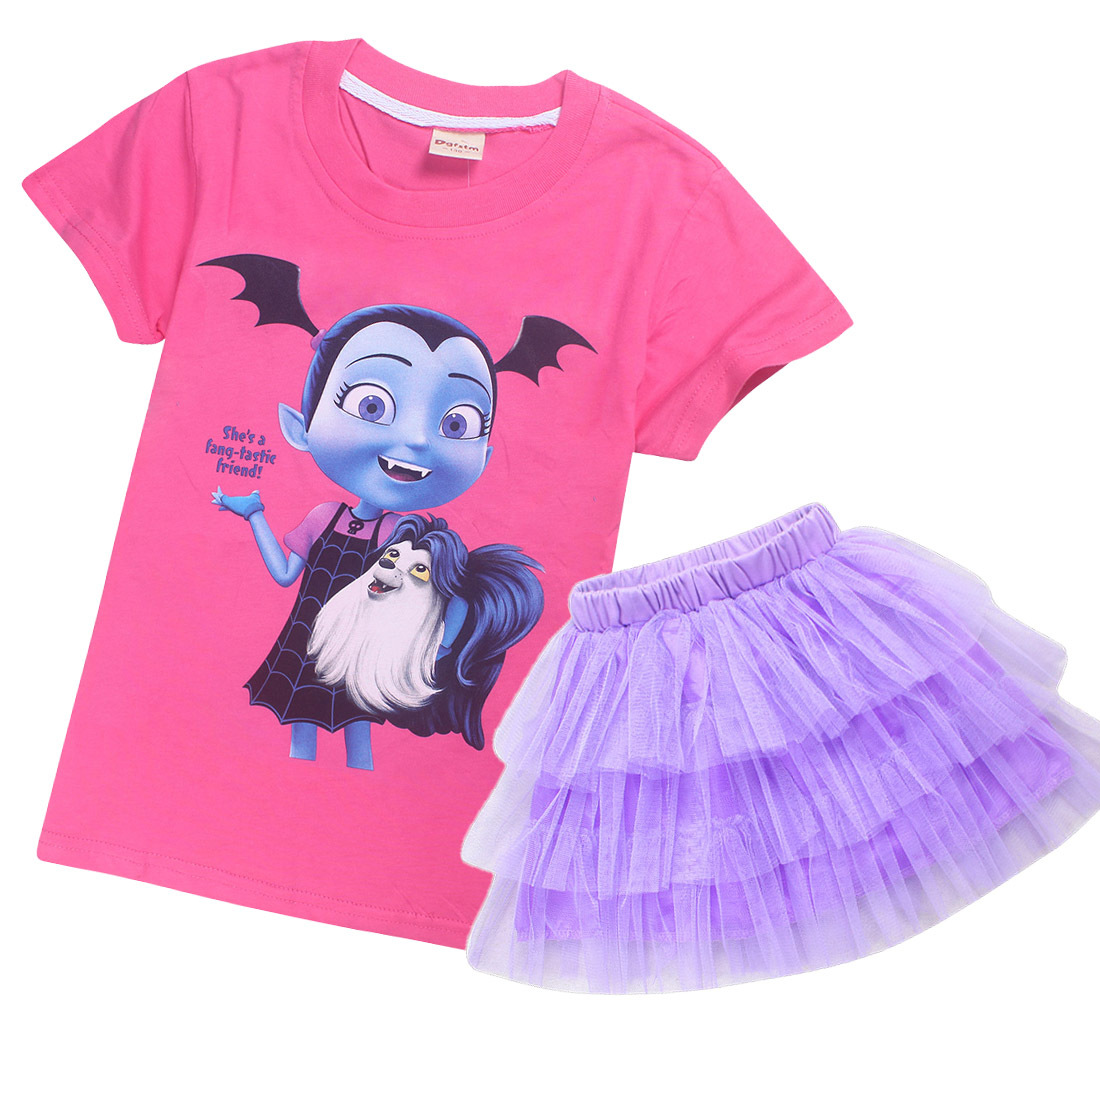 Vampirina Childrens Set Princess Girls Summer Tees + Short Dresses Sets Junior Cosplay Costume Kids Birthday Party Gift